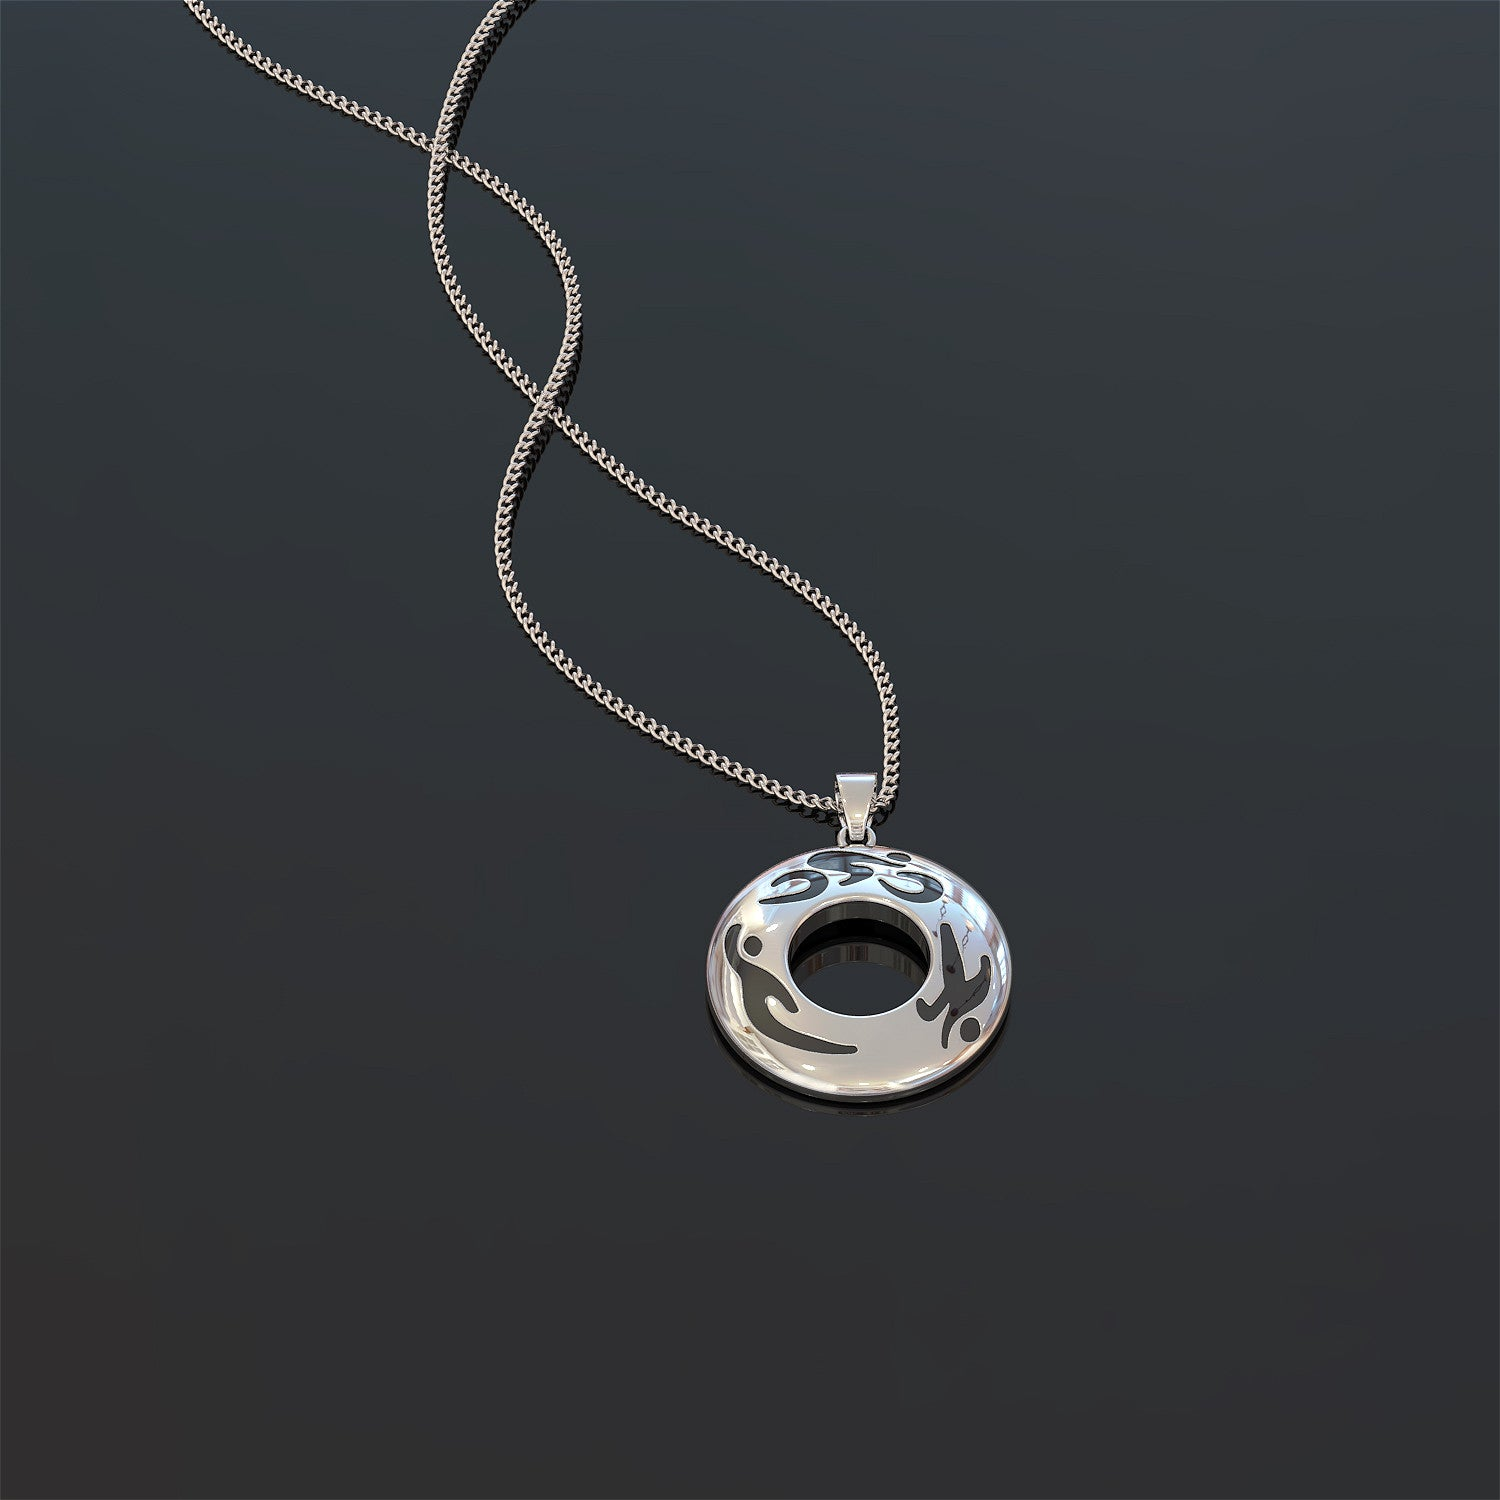 Swim, Bike, Run Necklace - LIMITED EDITION